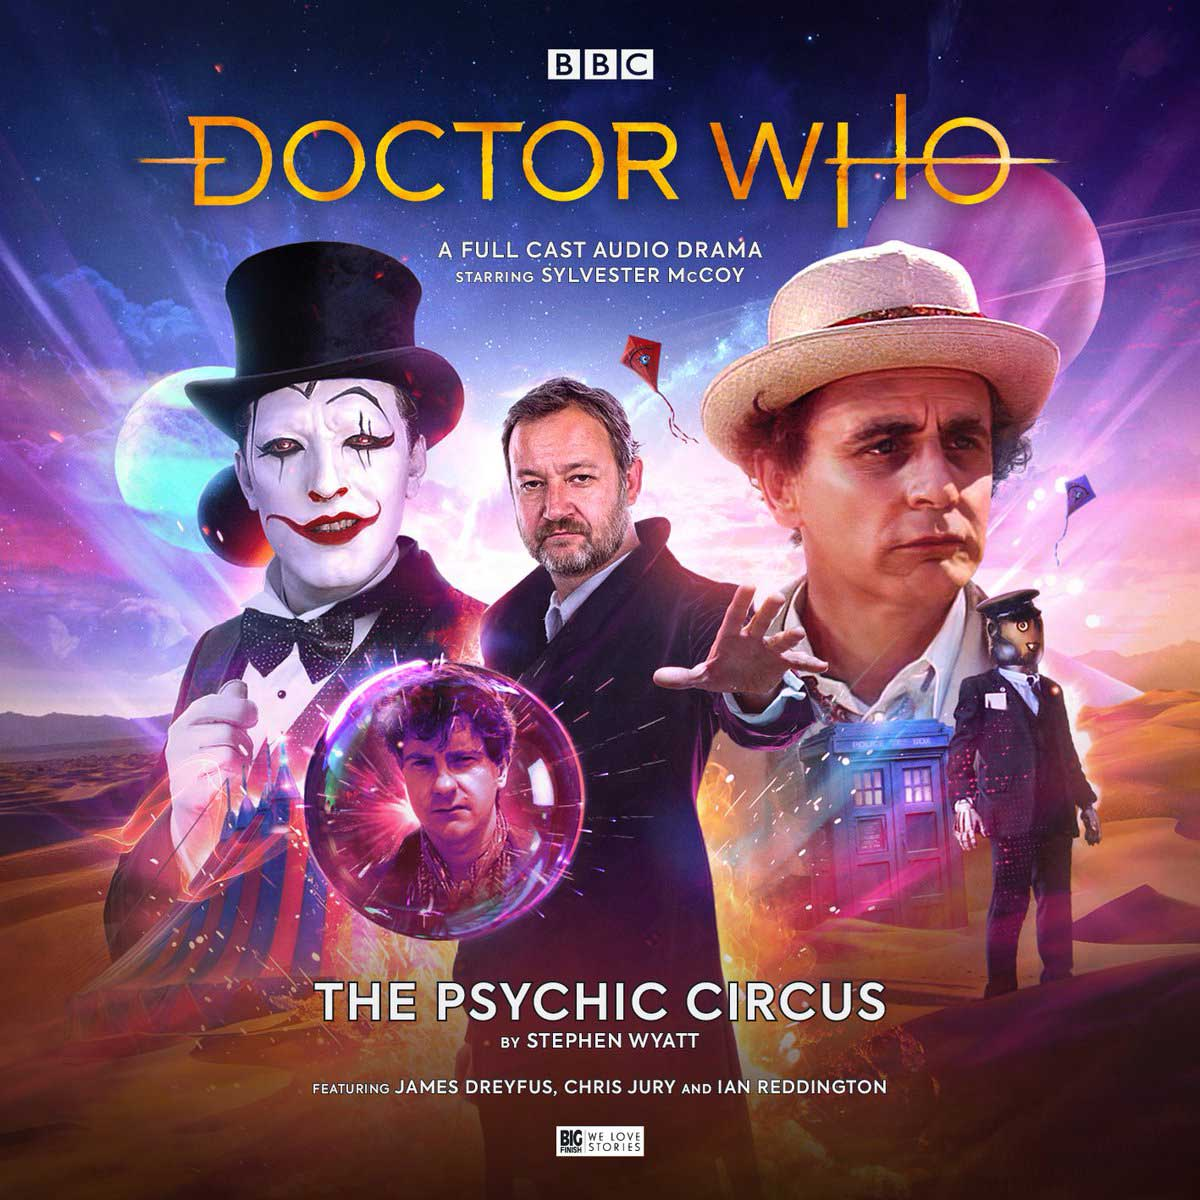 DOCTOR WHO - THE PSYCHIC CIRCUS